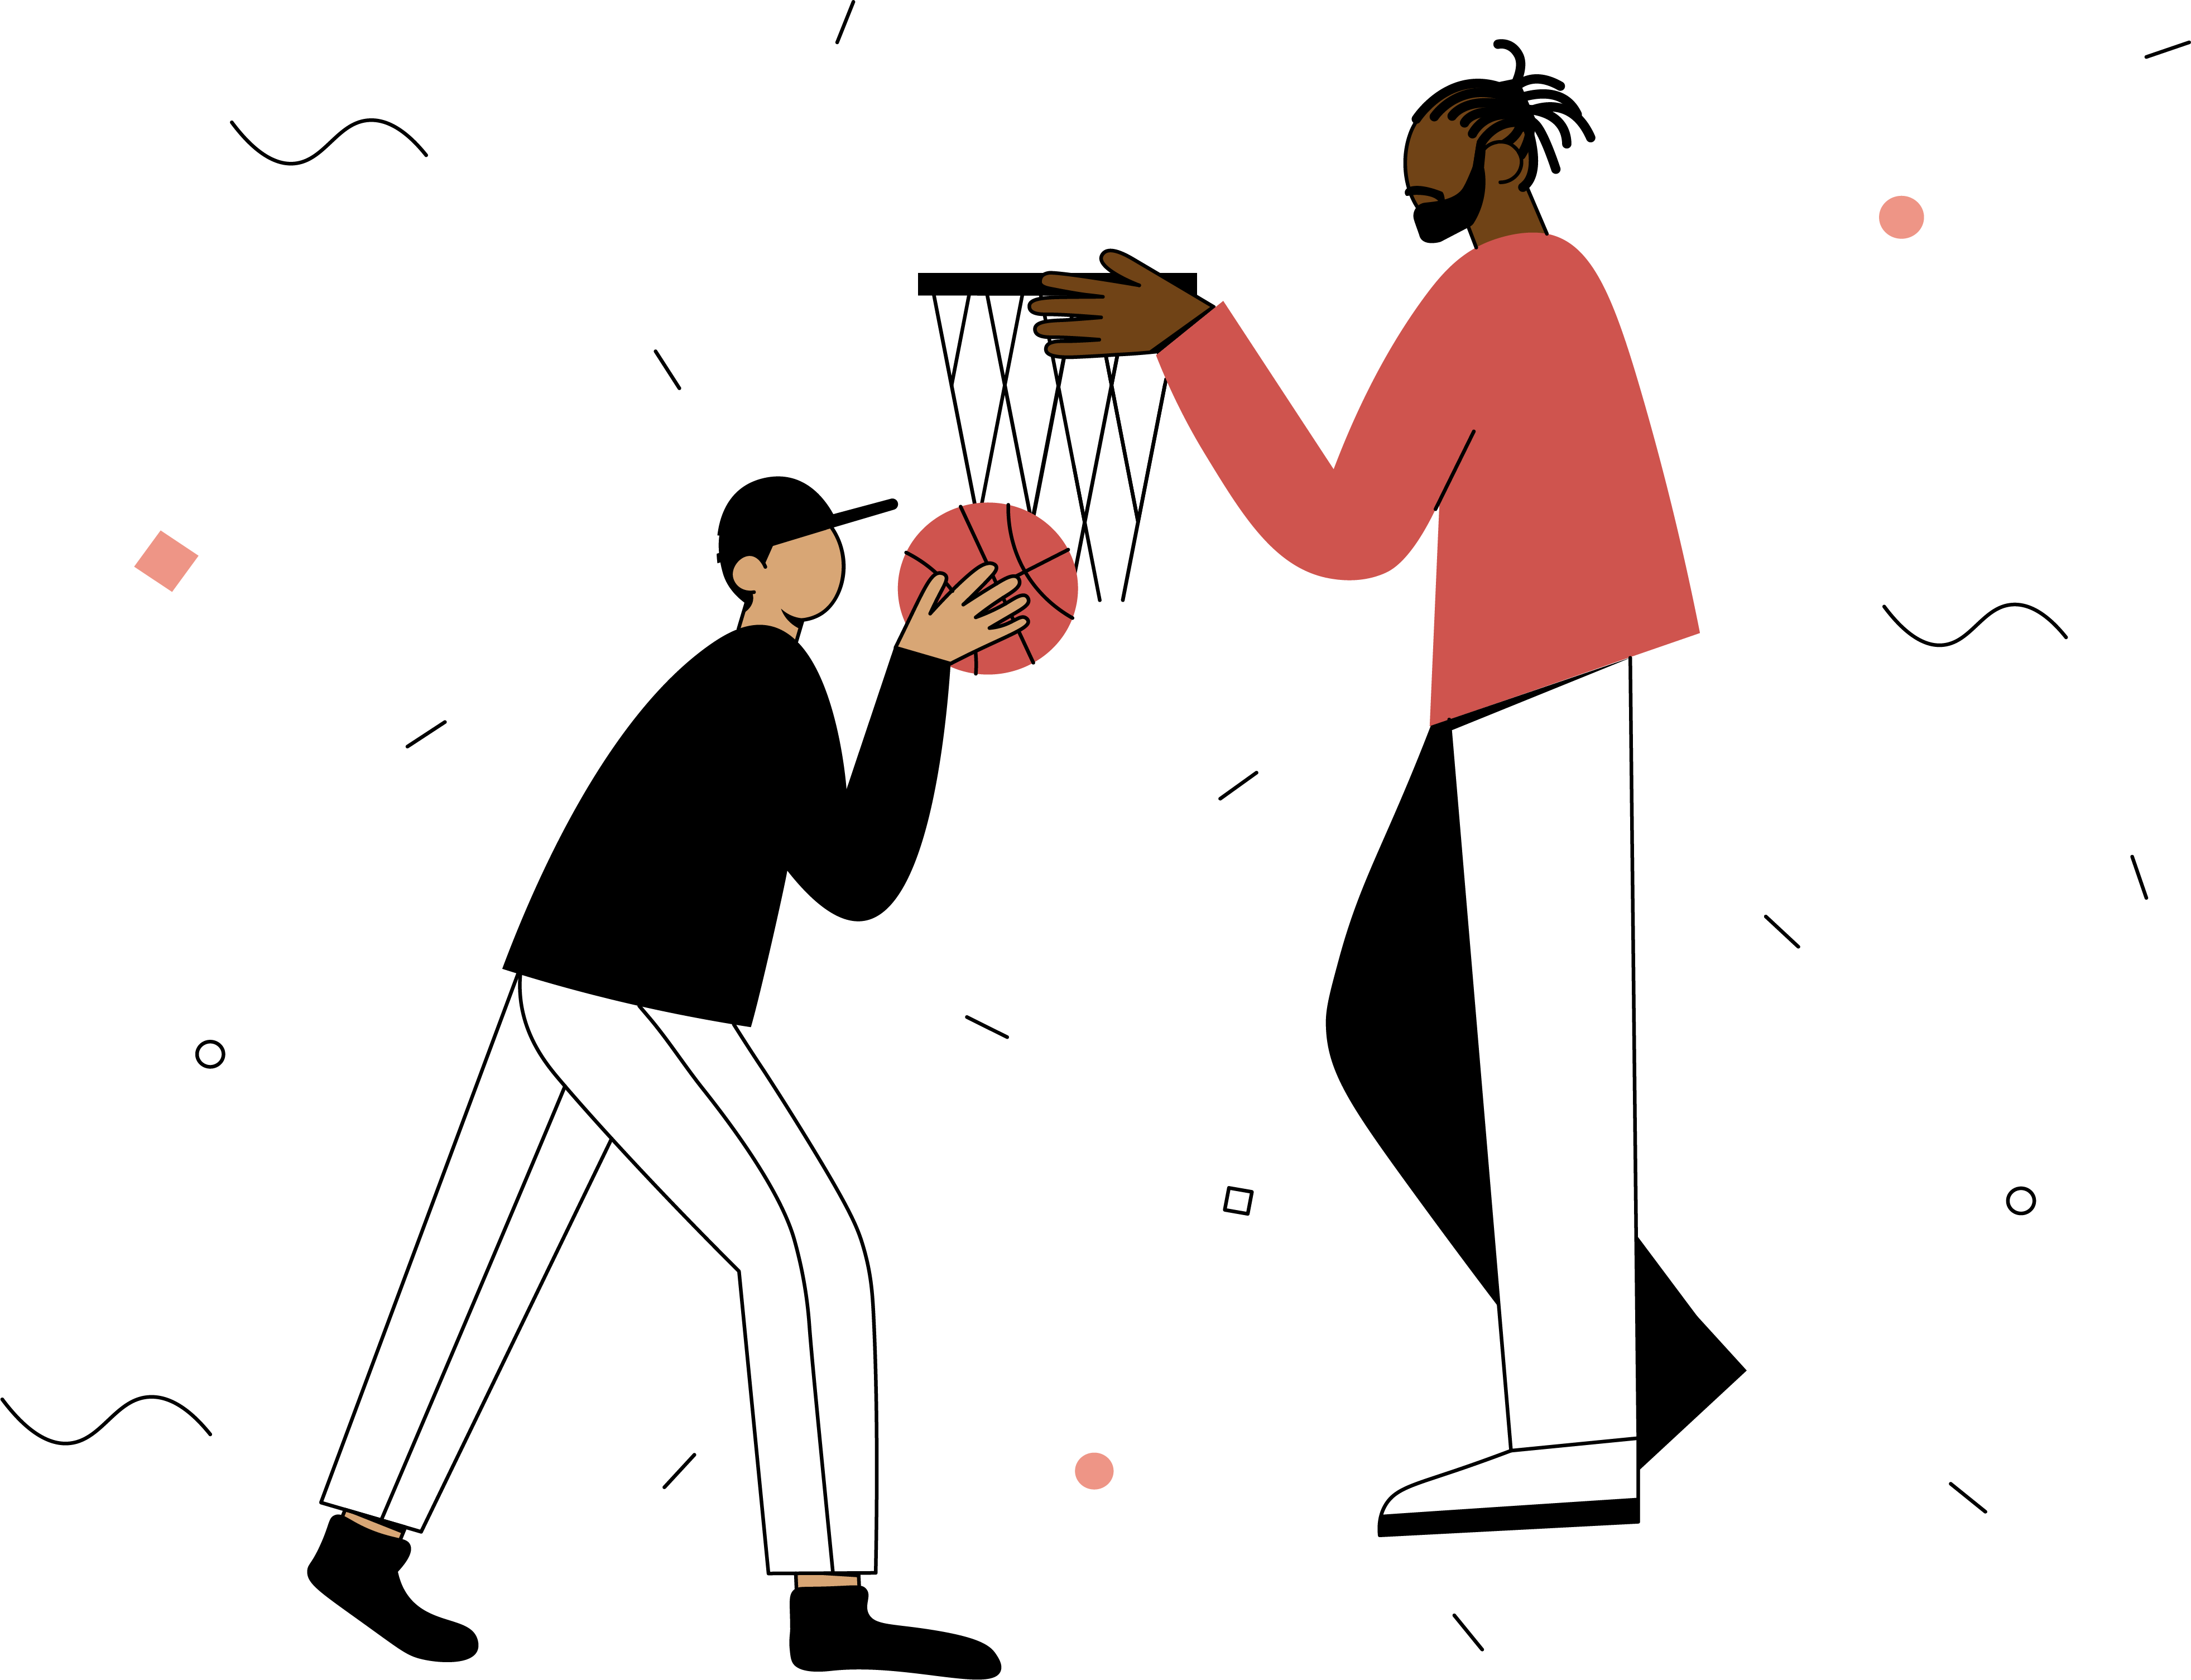 An illustration of one man holding a basketball hoop and another reaching the ball towards the basket